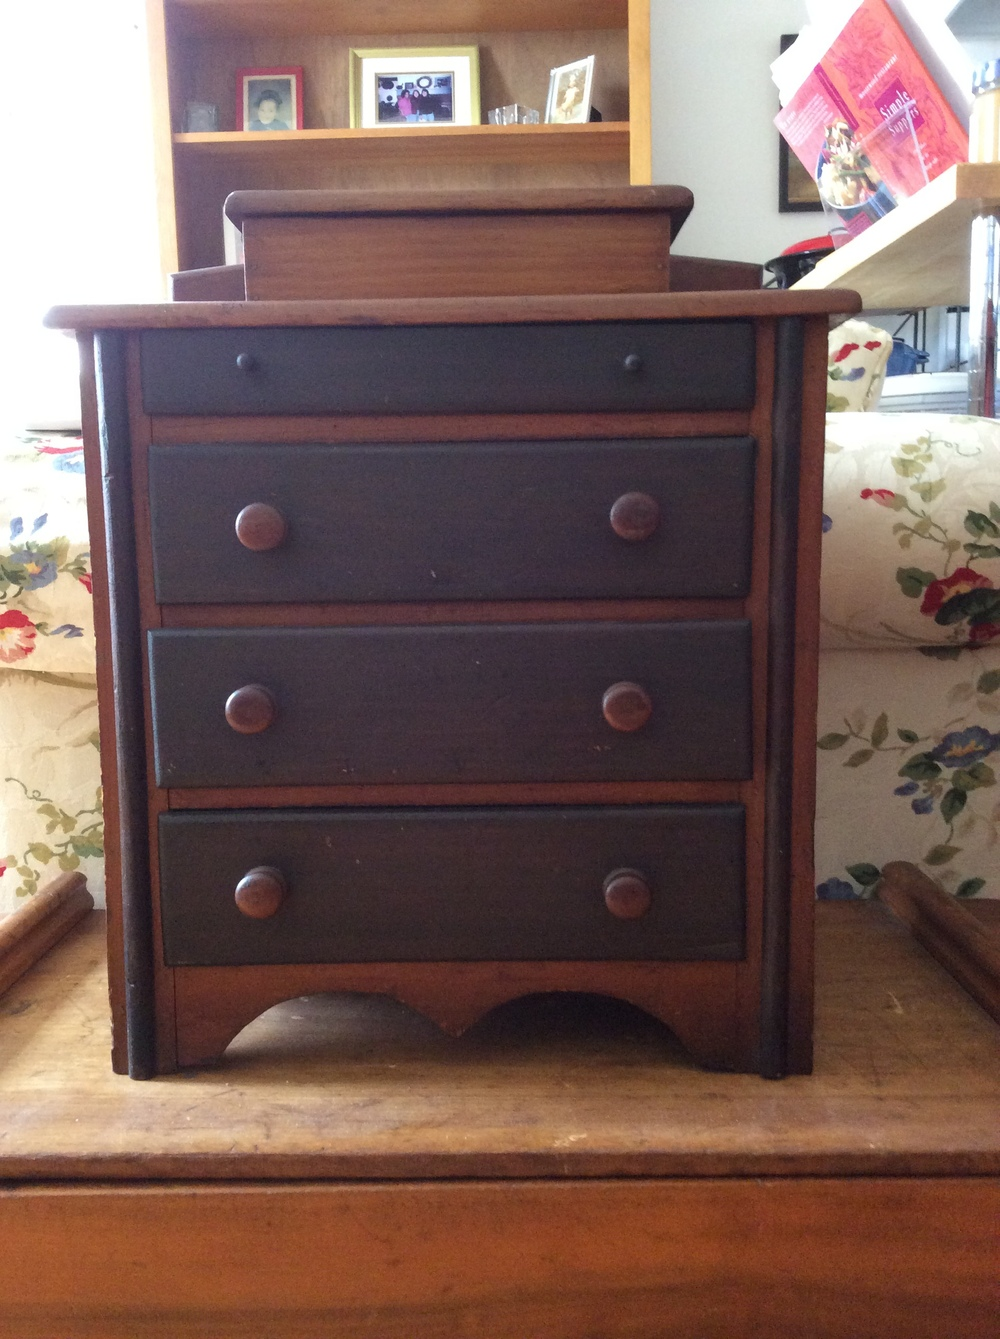 Miniature 4-drawer chest with hinged top well, great example of a highly collectible form.   $1000 estimated value